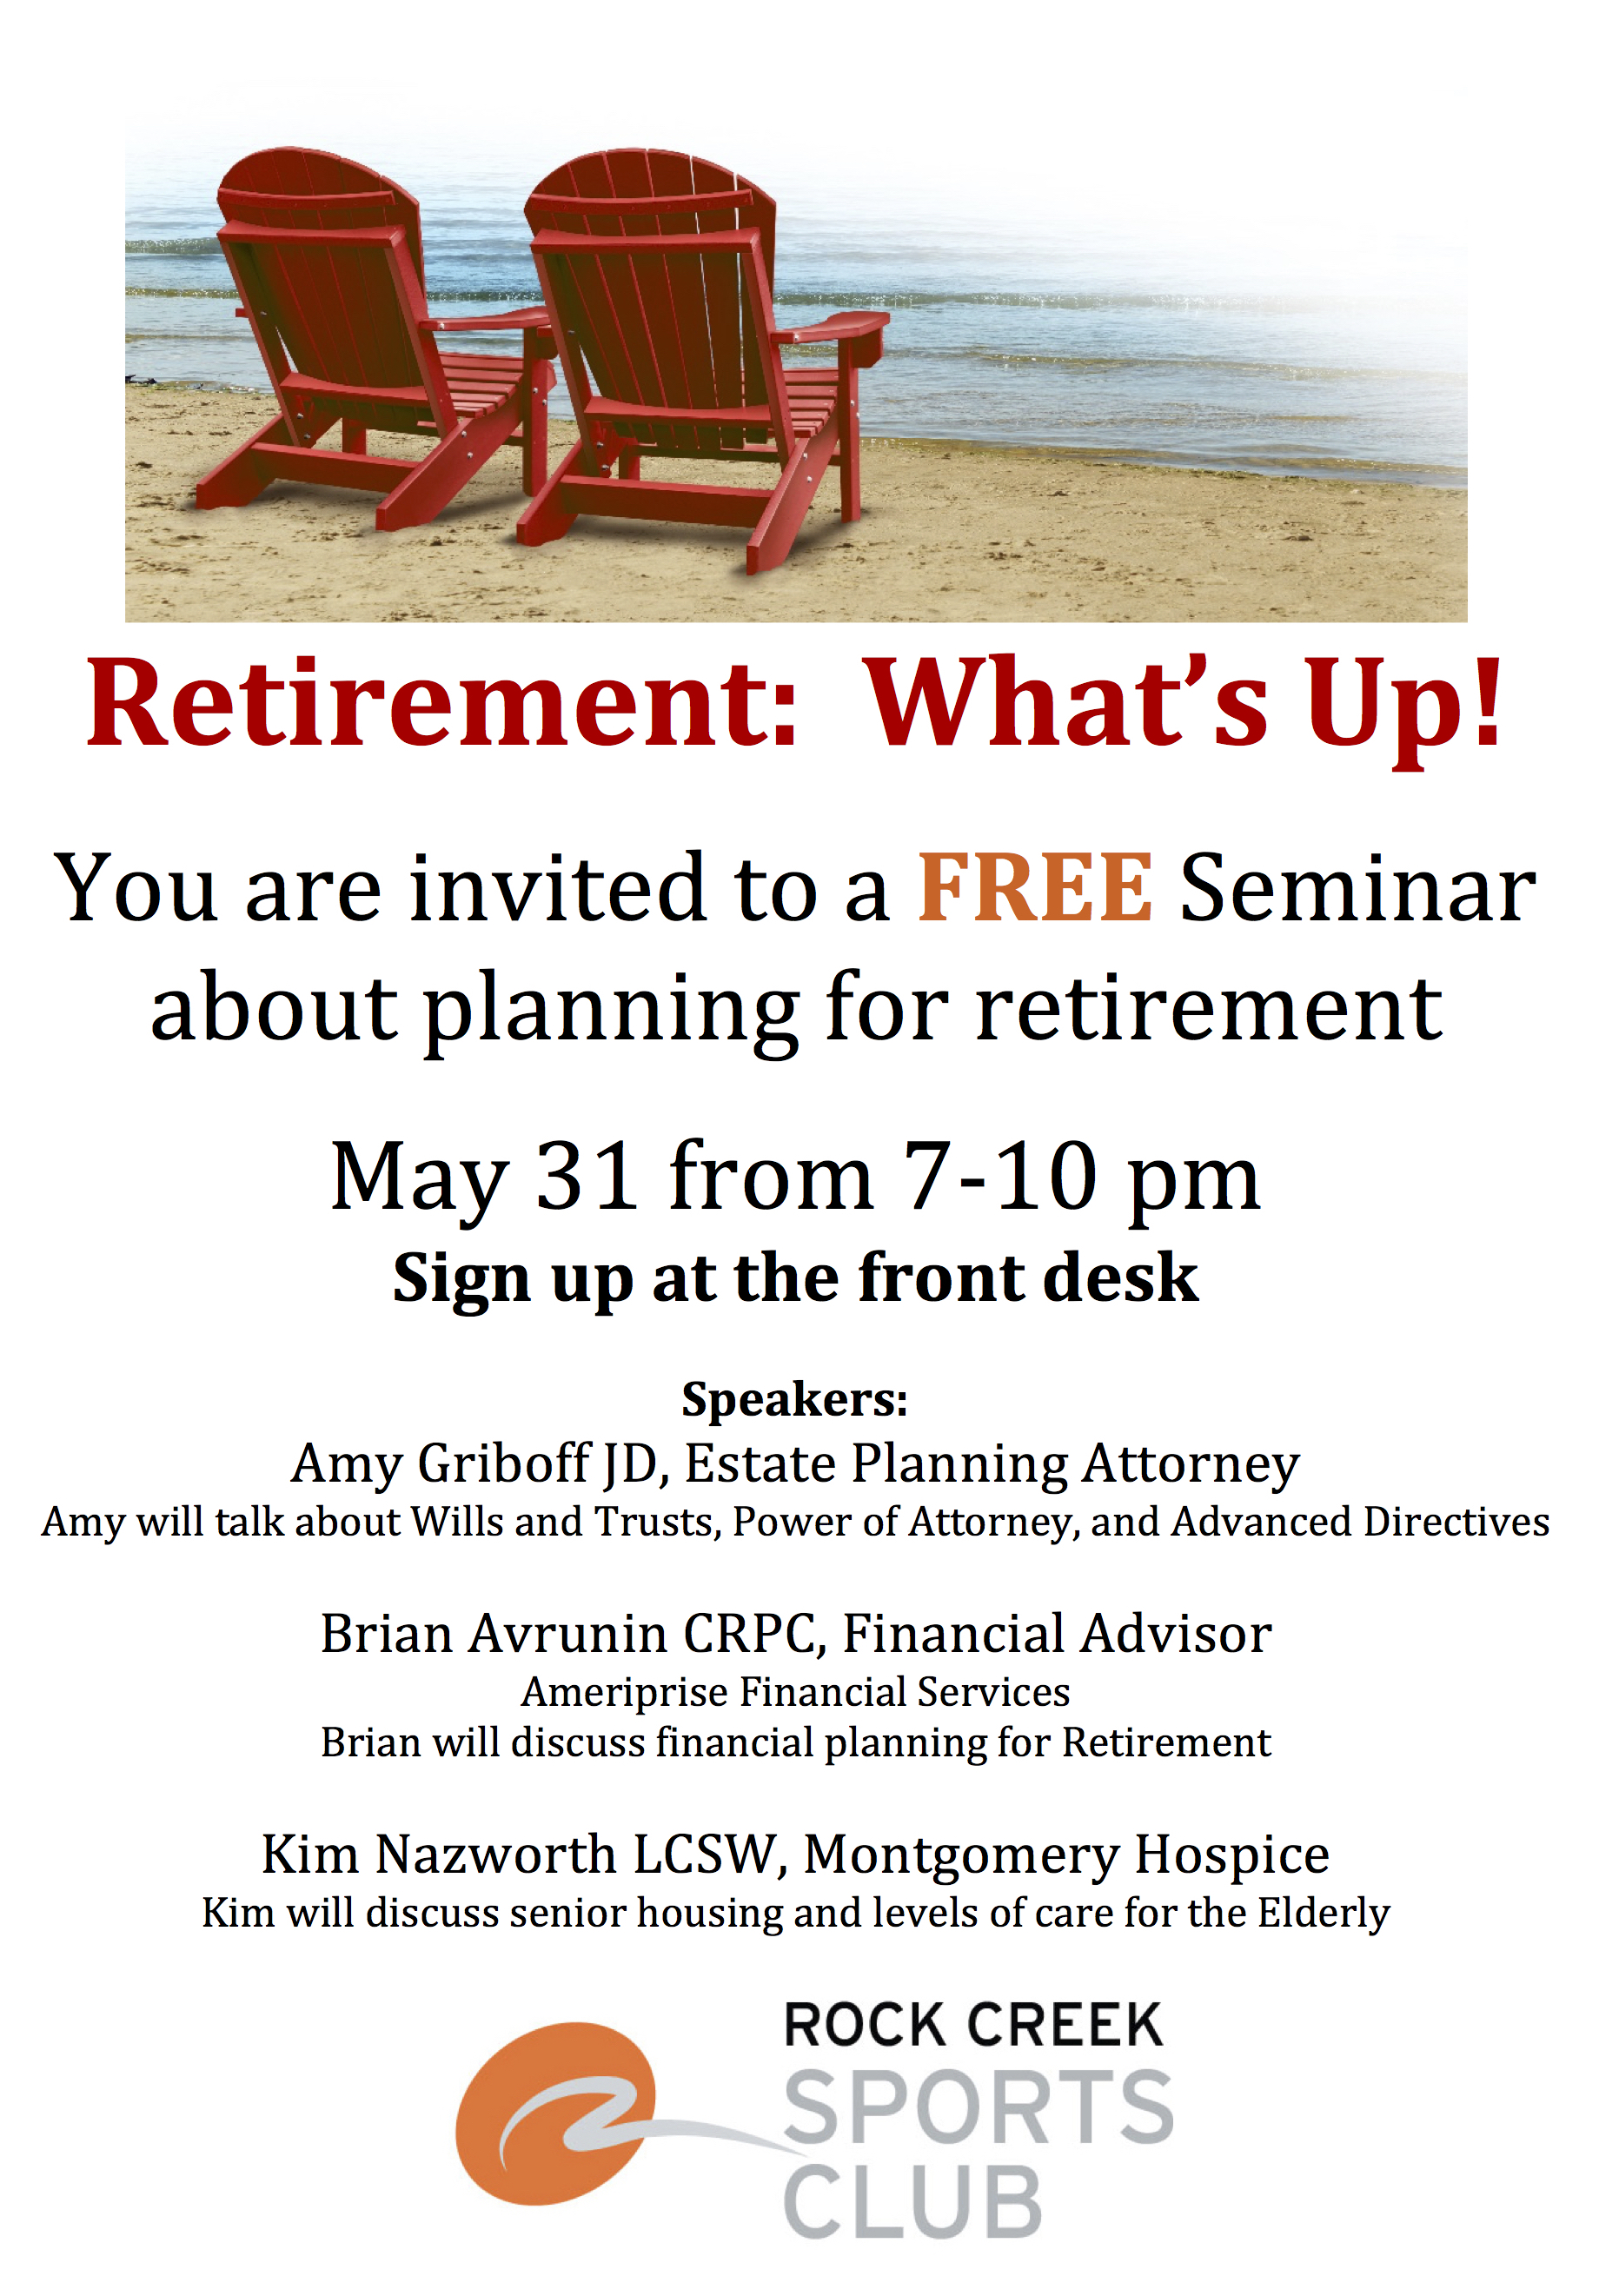 Planning for Retirement flyer copy